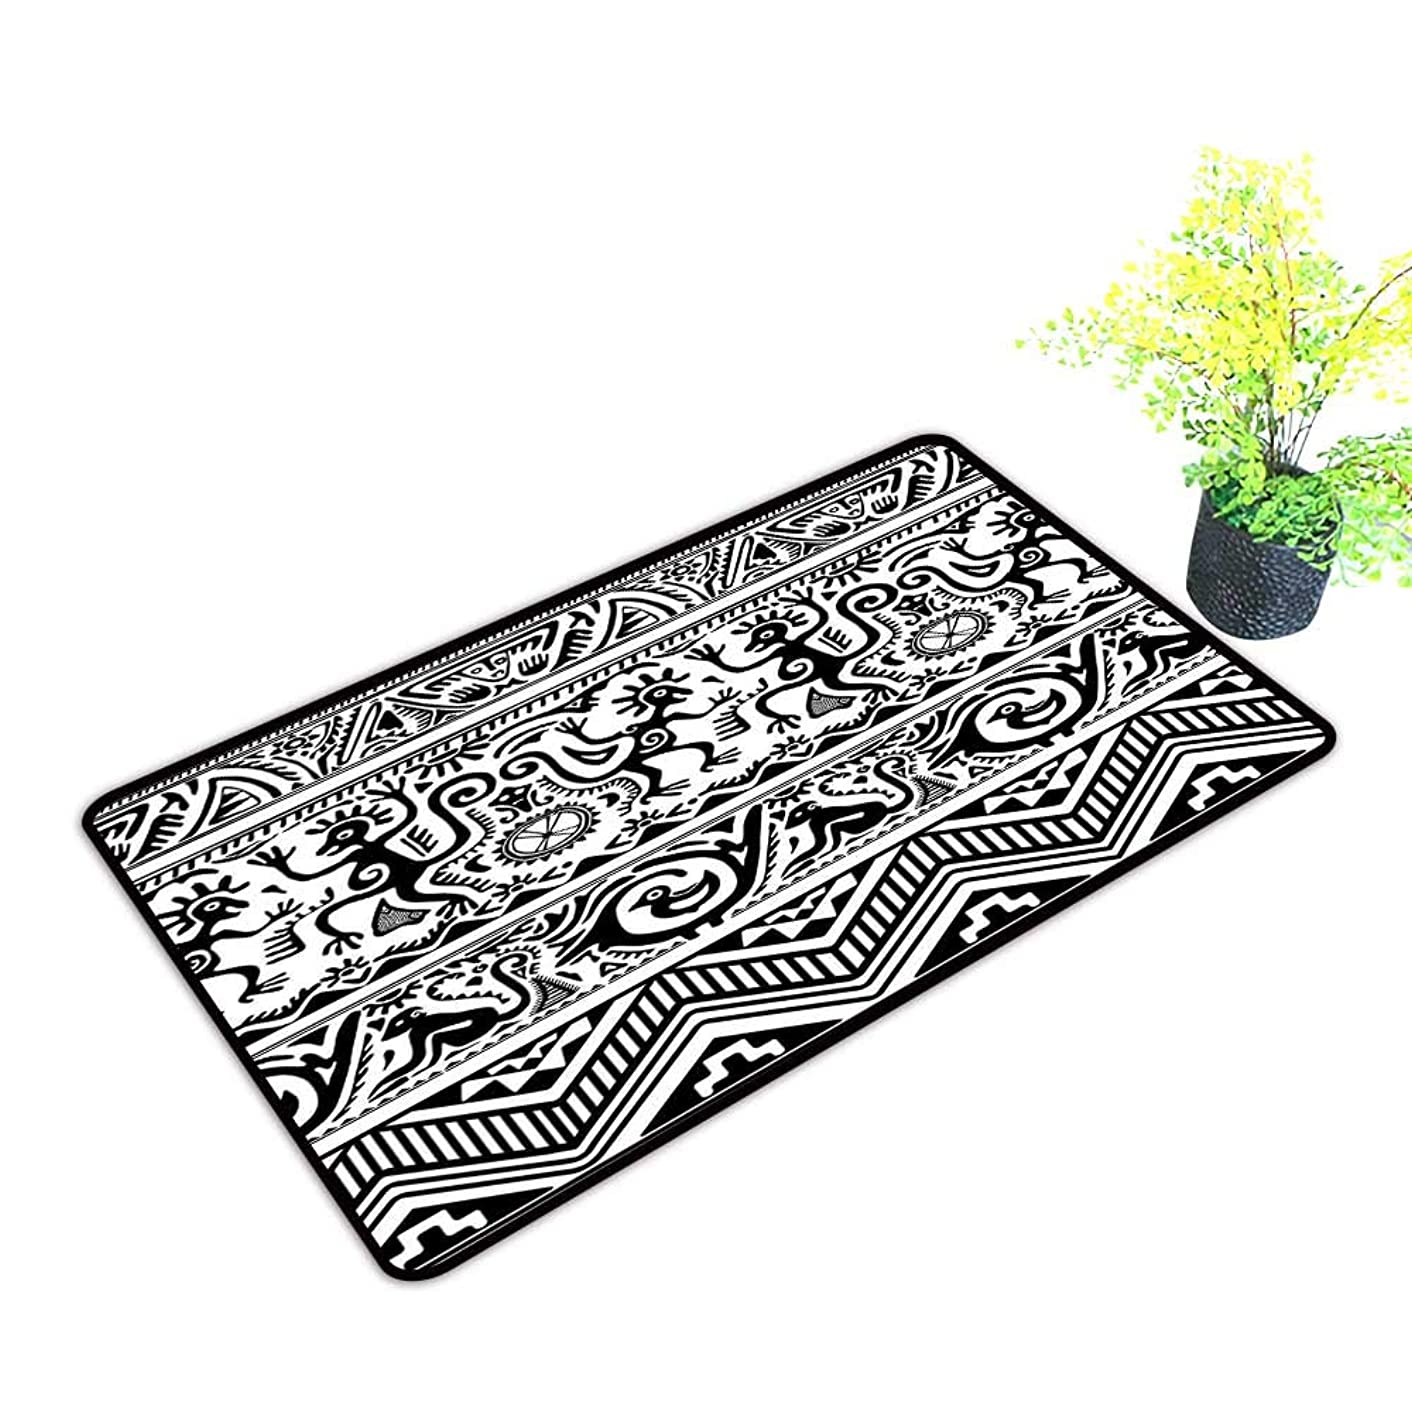 Diycon Outdoor Doormat Primitive Monkeys Birds Primitive Animal Motifs Tribal Ornaments African Petroglyph Theme W16 xL20 Suitable for Outdoor and Indoor use Black White